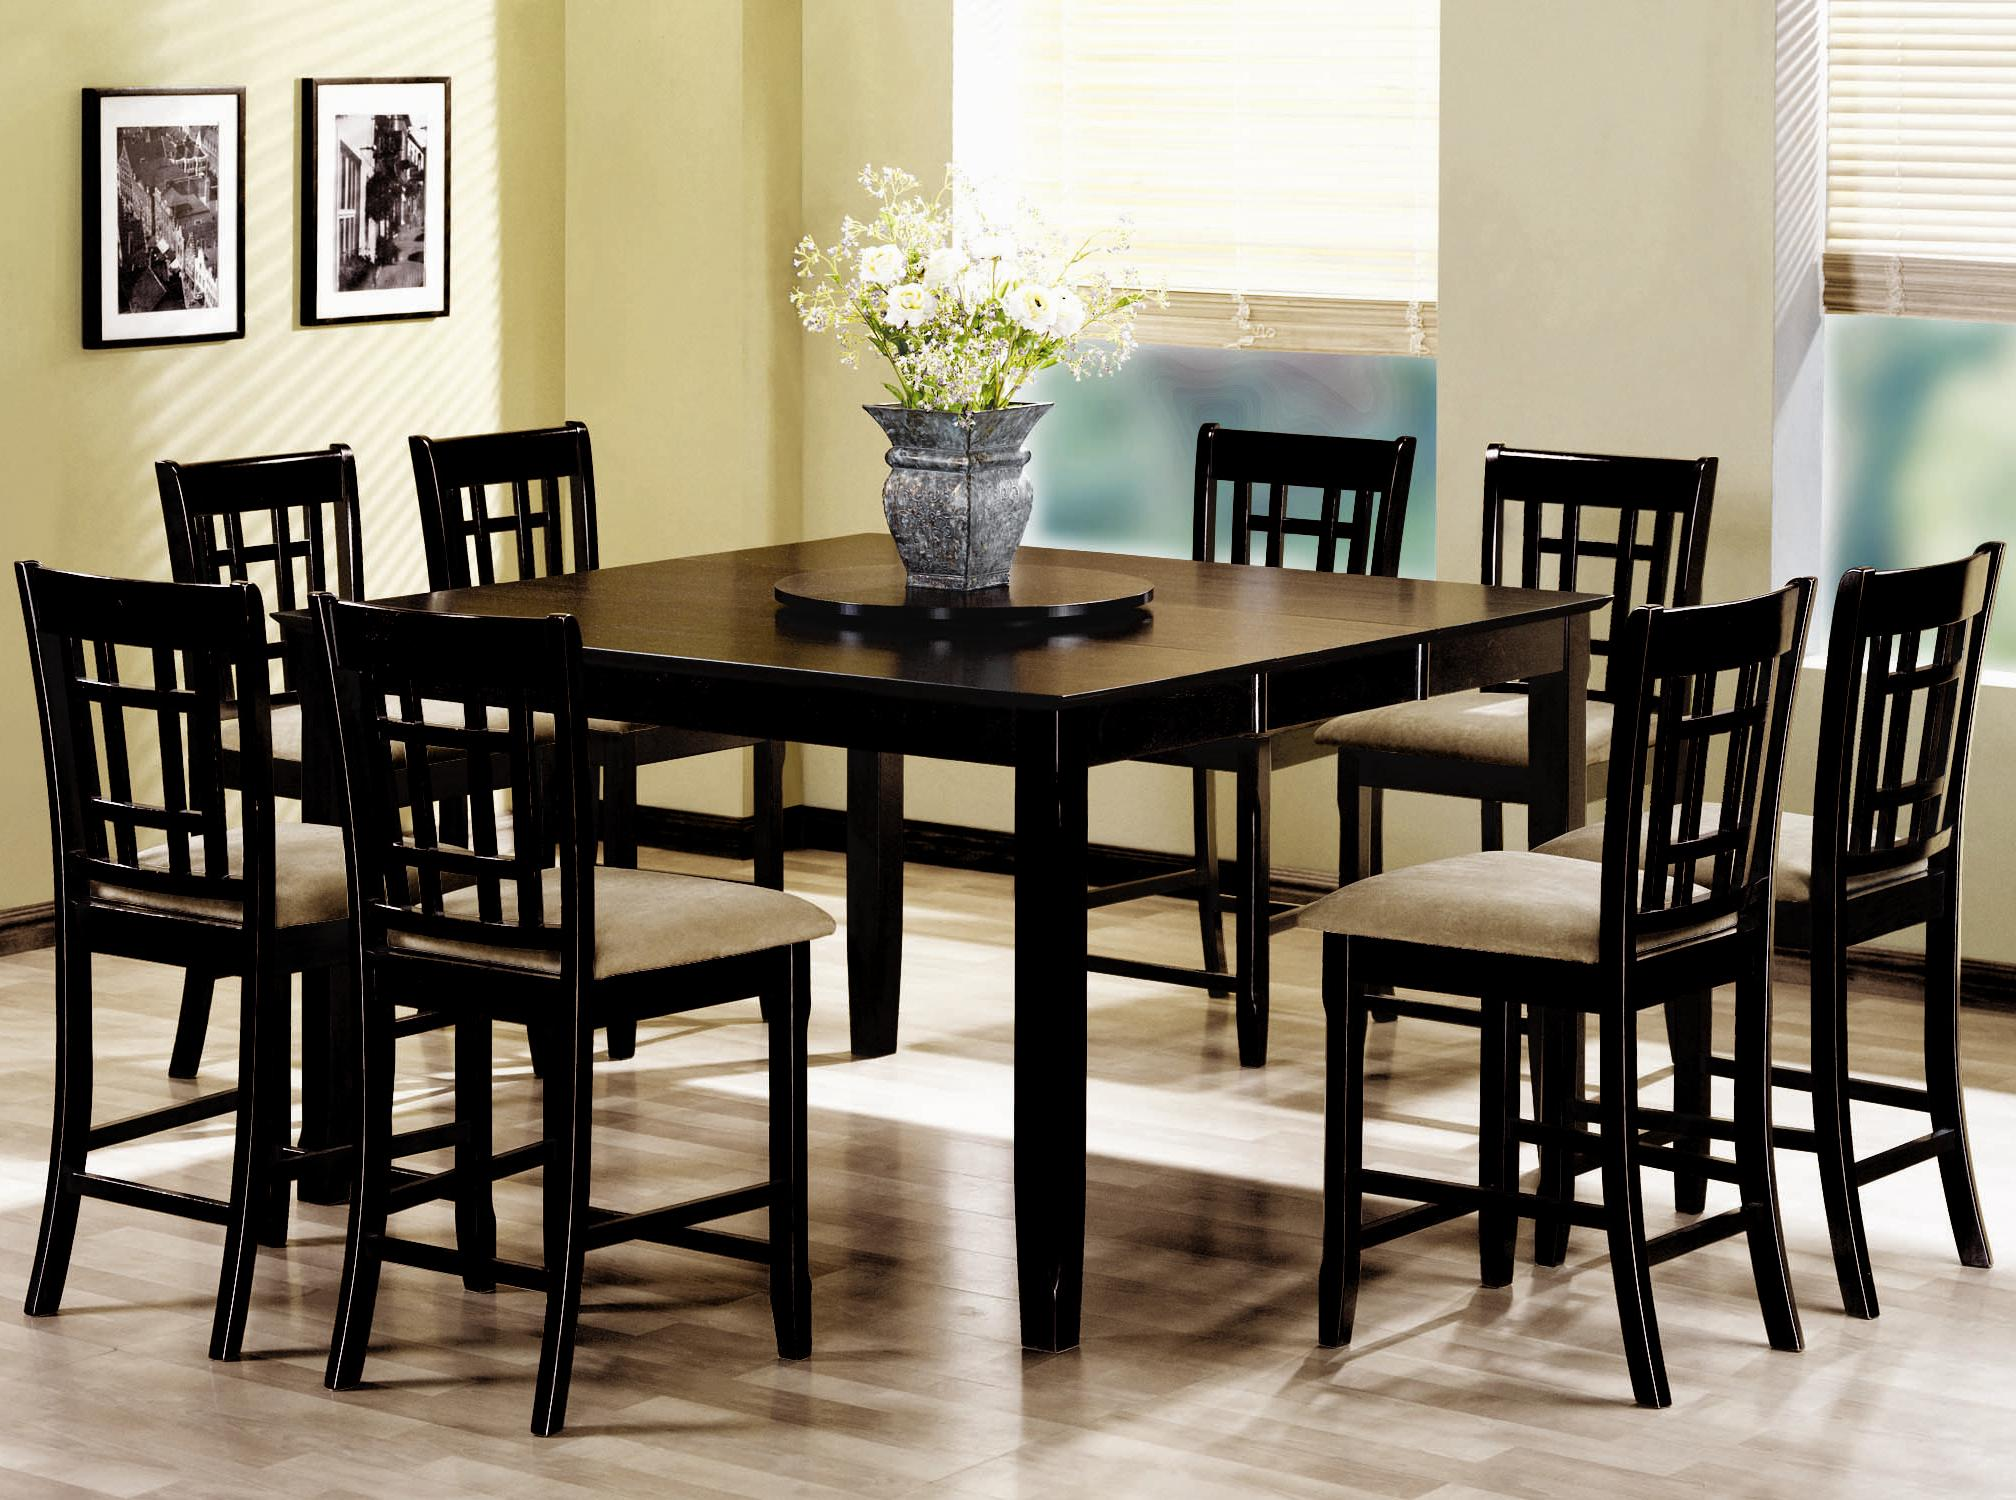 Counter height dinette sets homesfeed for High dinner table set